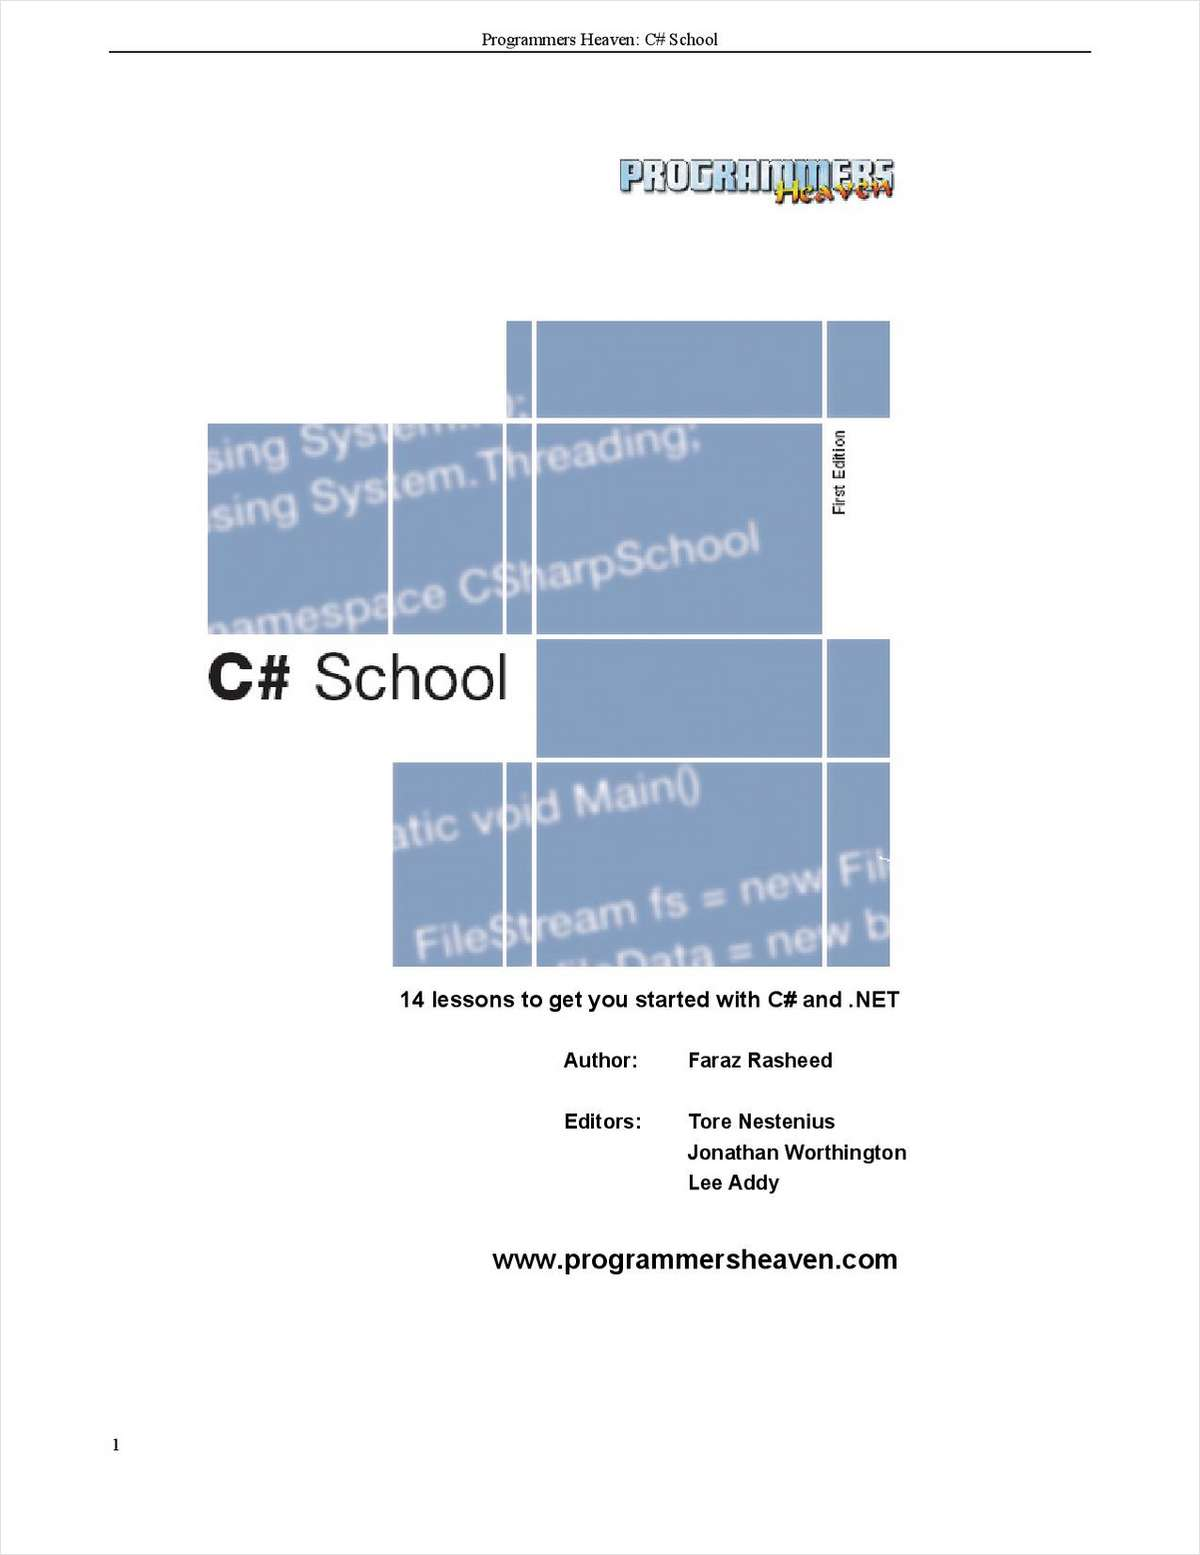 Programmers Heaven C# School Book  -Free 338 Page eBook